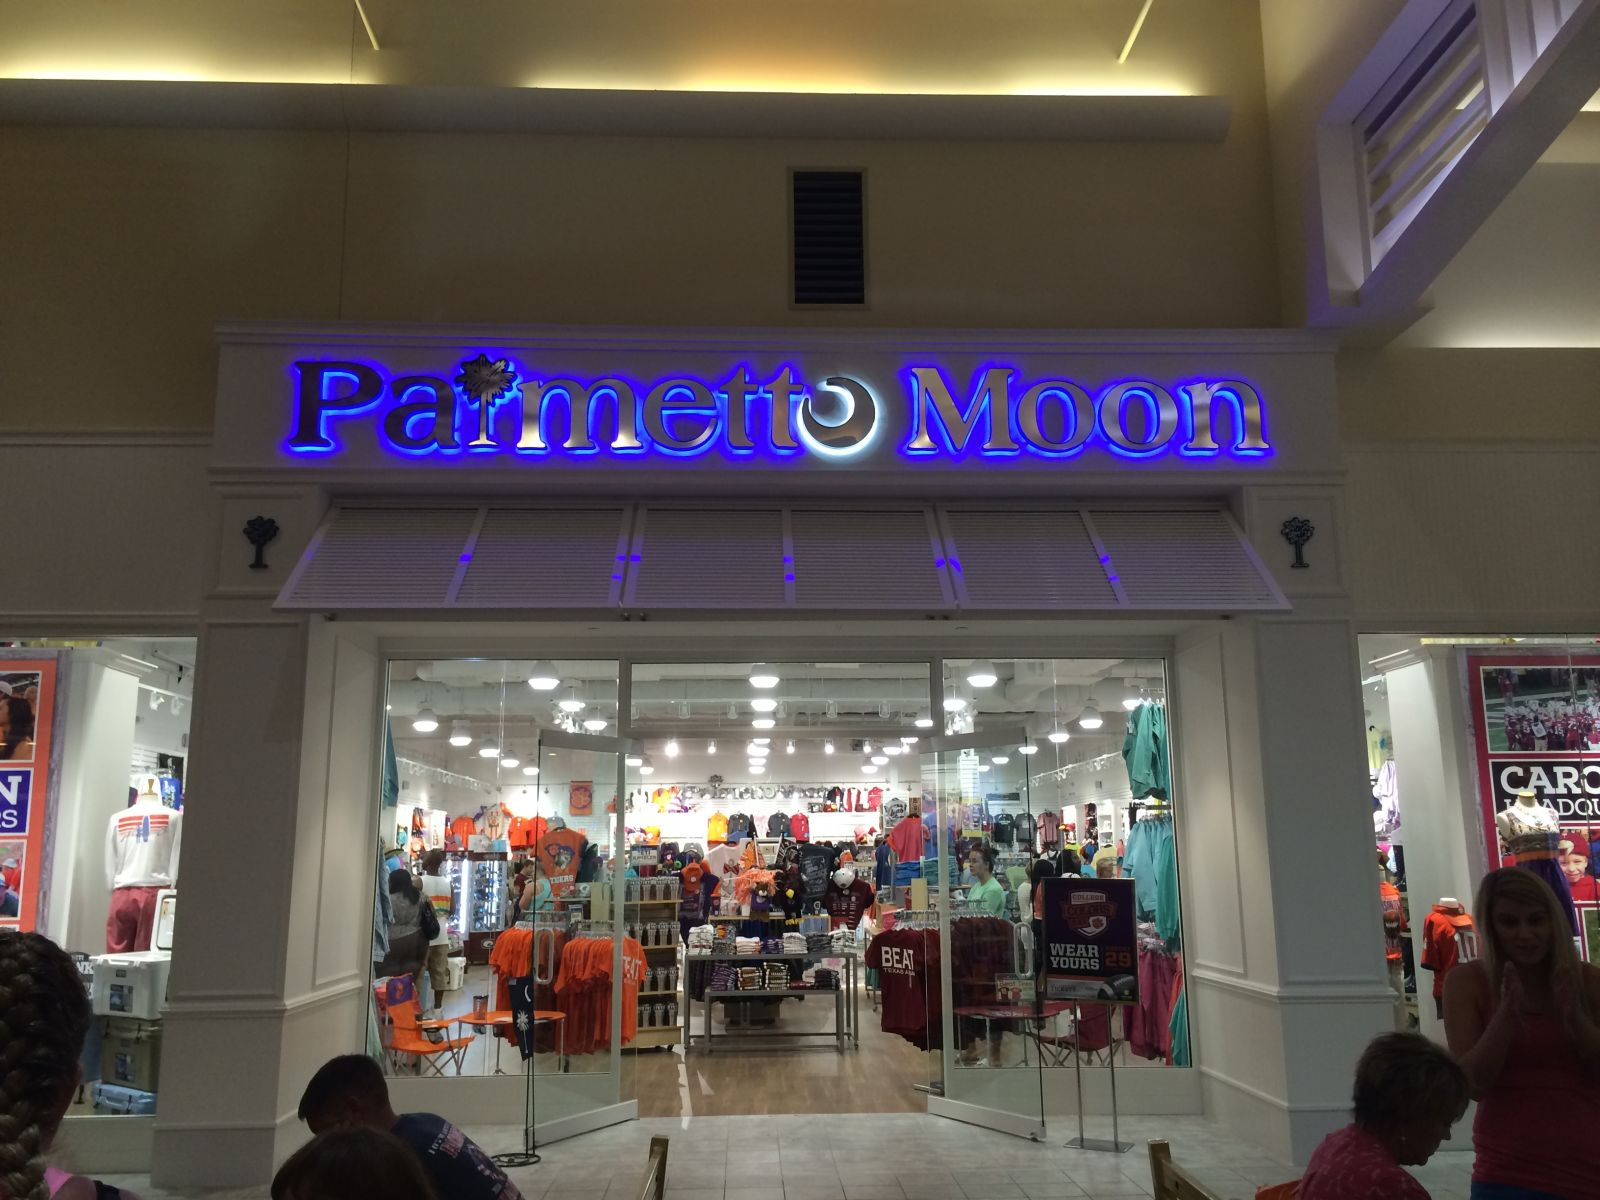 Palmetto Moon operates gift and apparel retail shops, including this one in Myrtle Beach, in South Carolina, North Carolina and Georgia. (Photo/Provided)